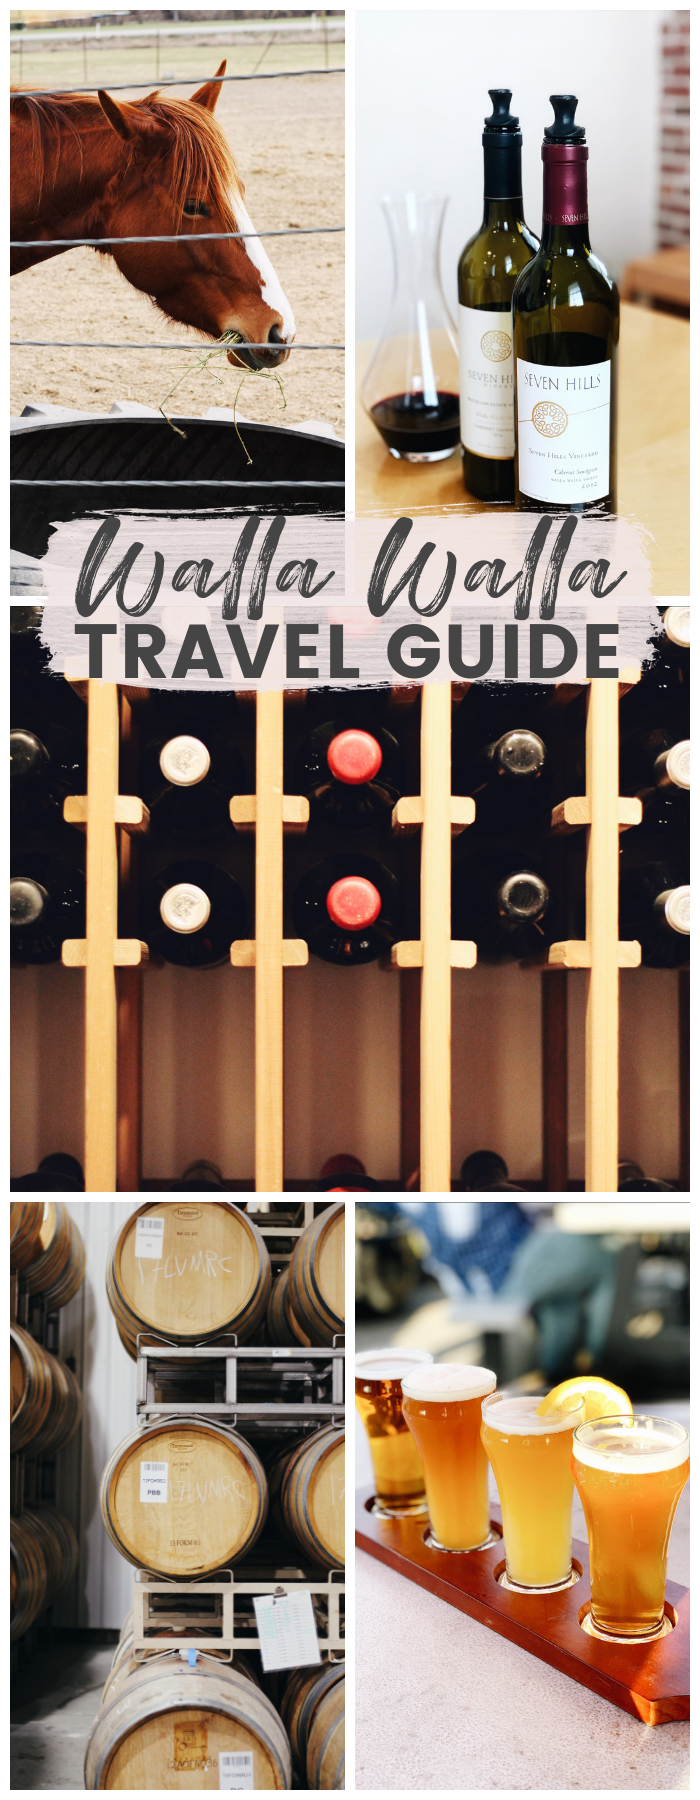 This travel guide covers the best things to do in Walla Walla, Washington; from wineries to restaurants to where to stay.